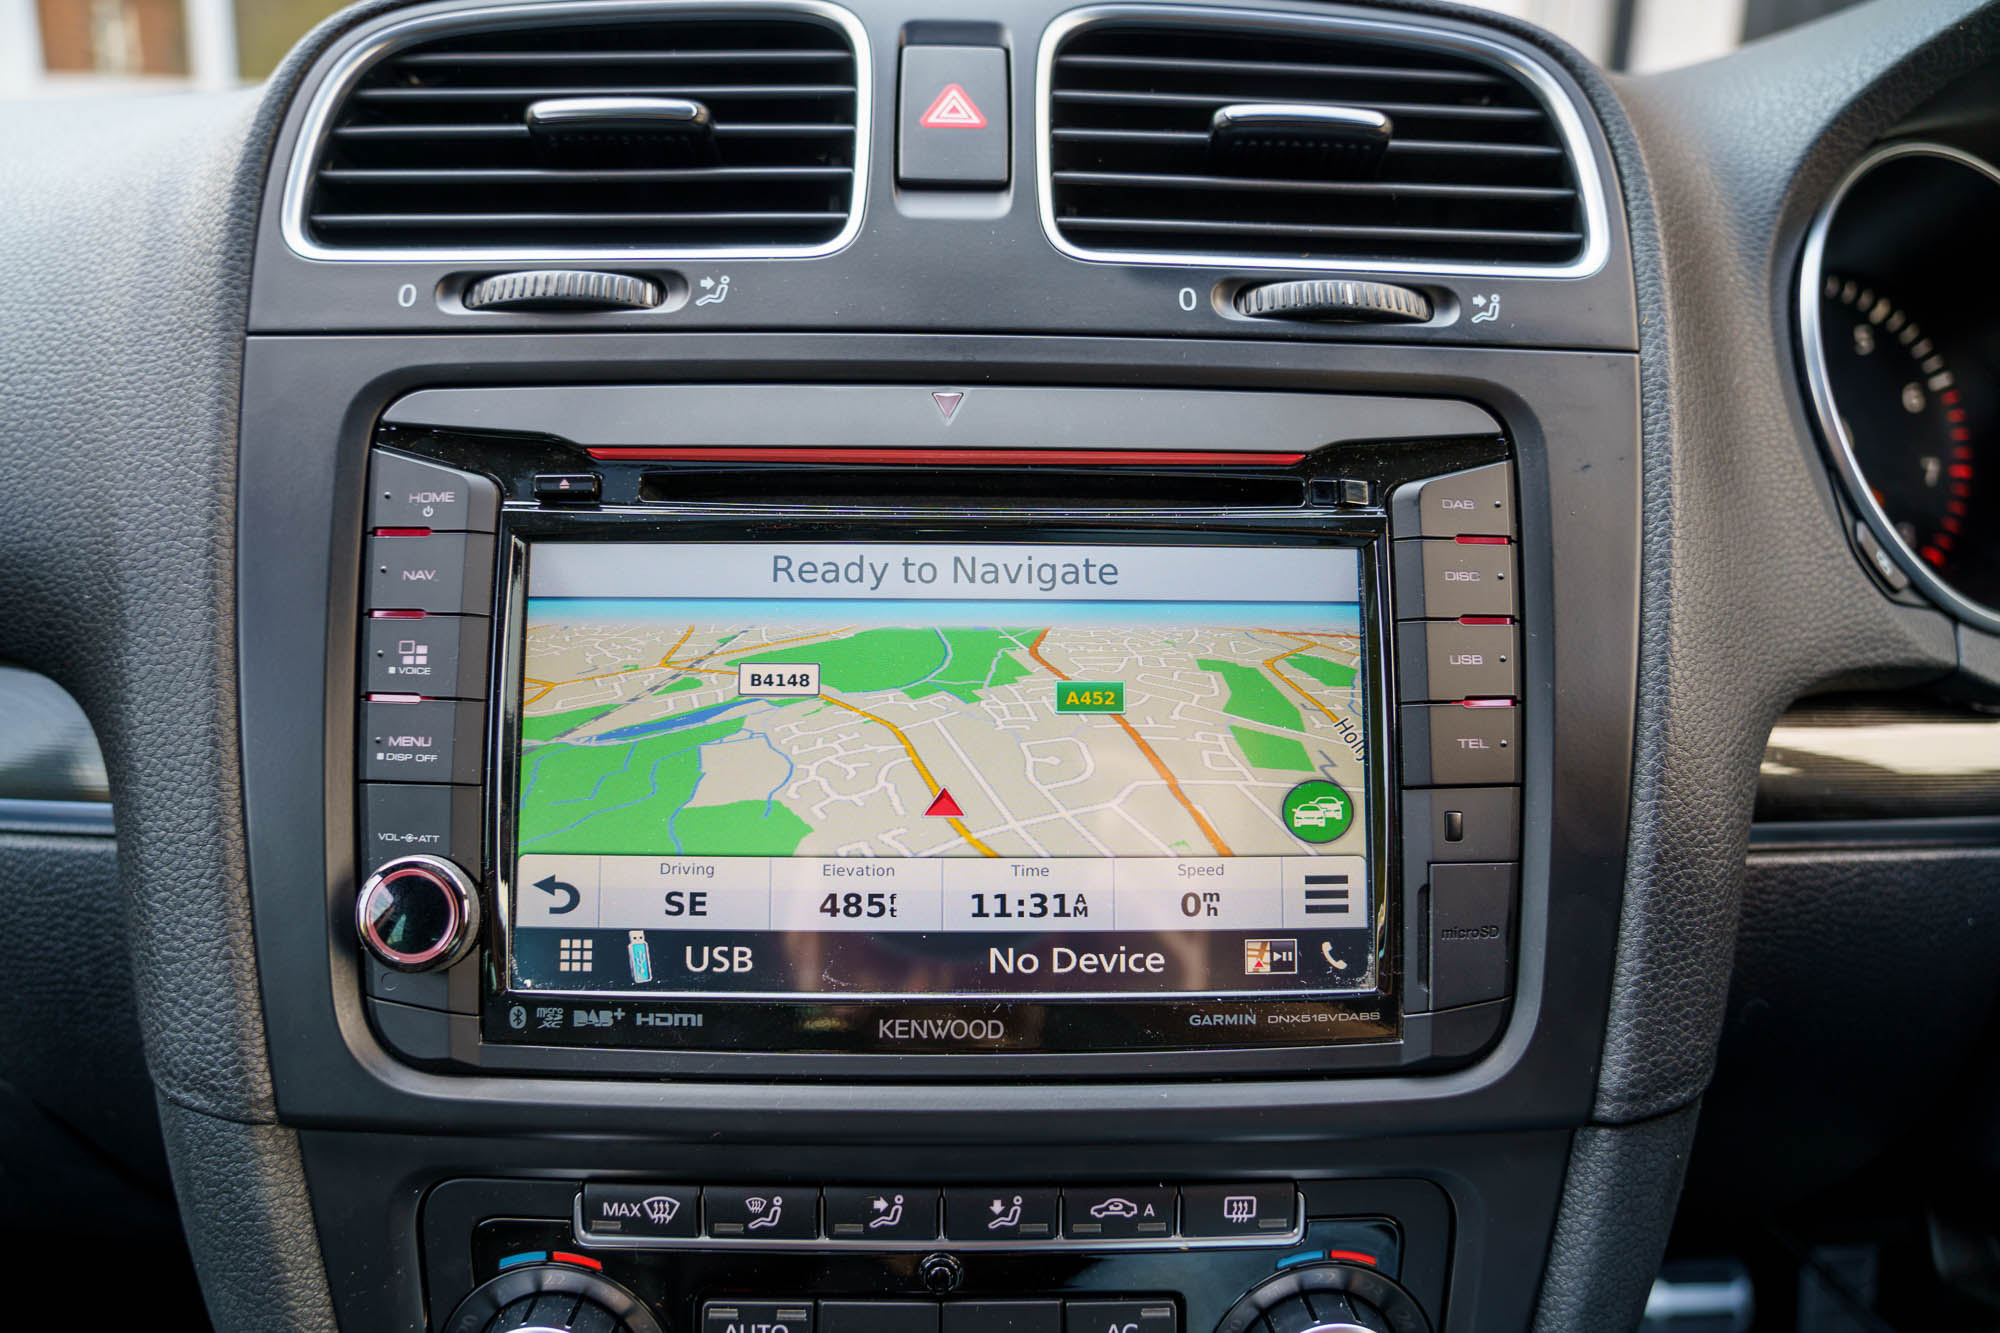 Kenwood DNX518VDABS Review For the Volkswagen Golf MK6 on kenwood dnx5120 map update, garmin products, kenwood dnx5120 garmin update, garmin map models,